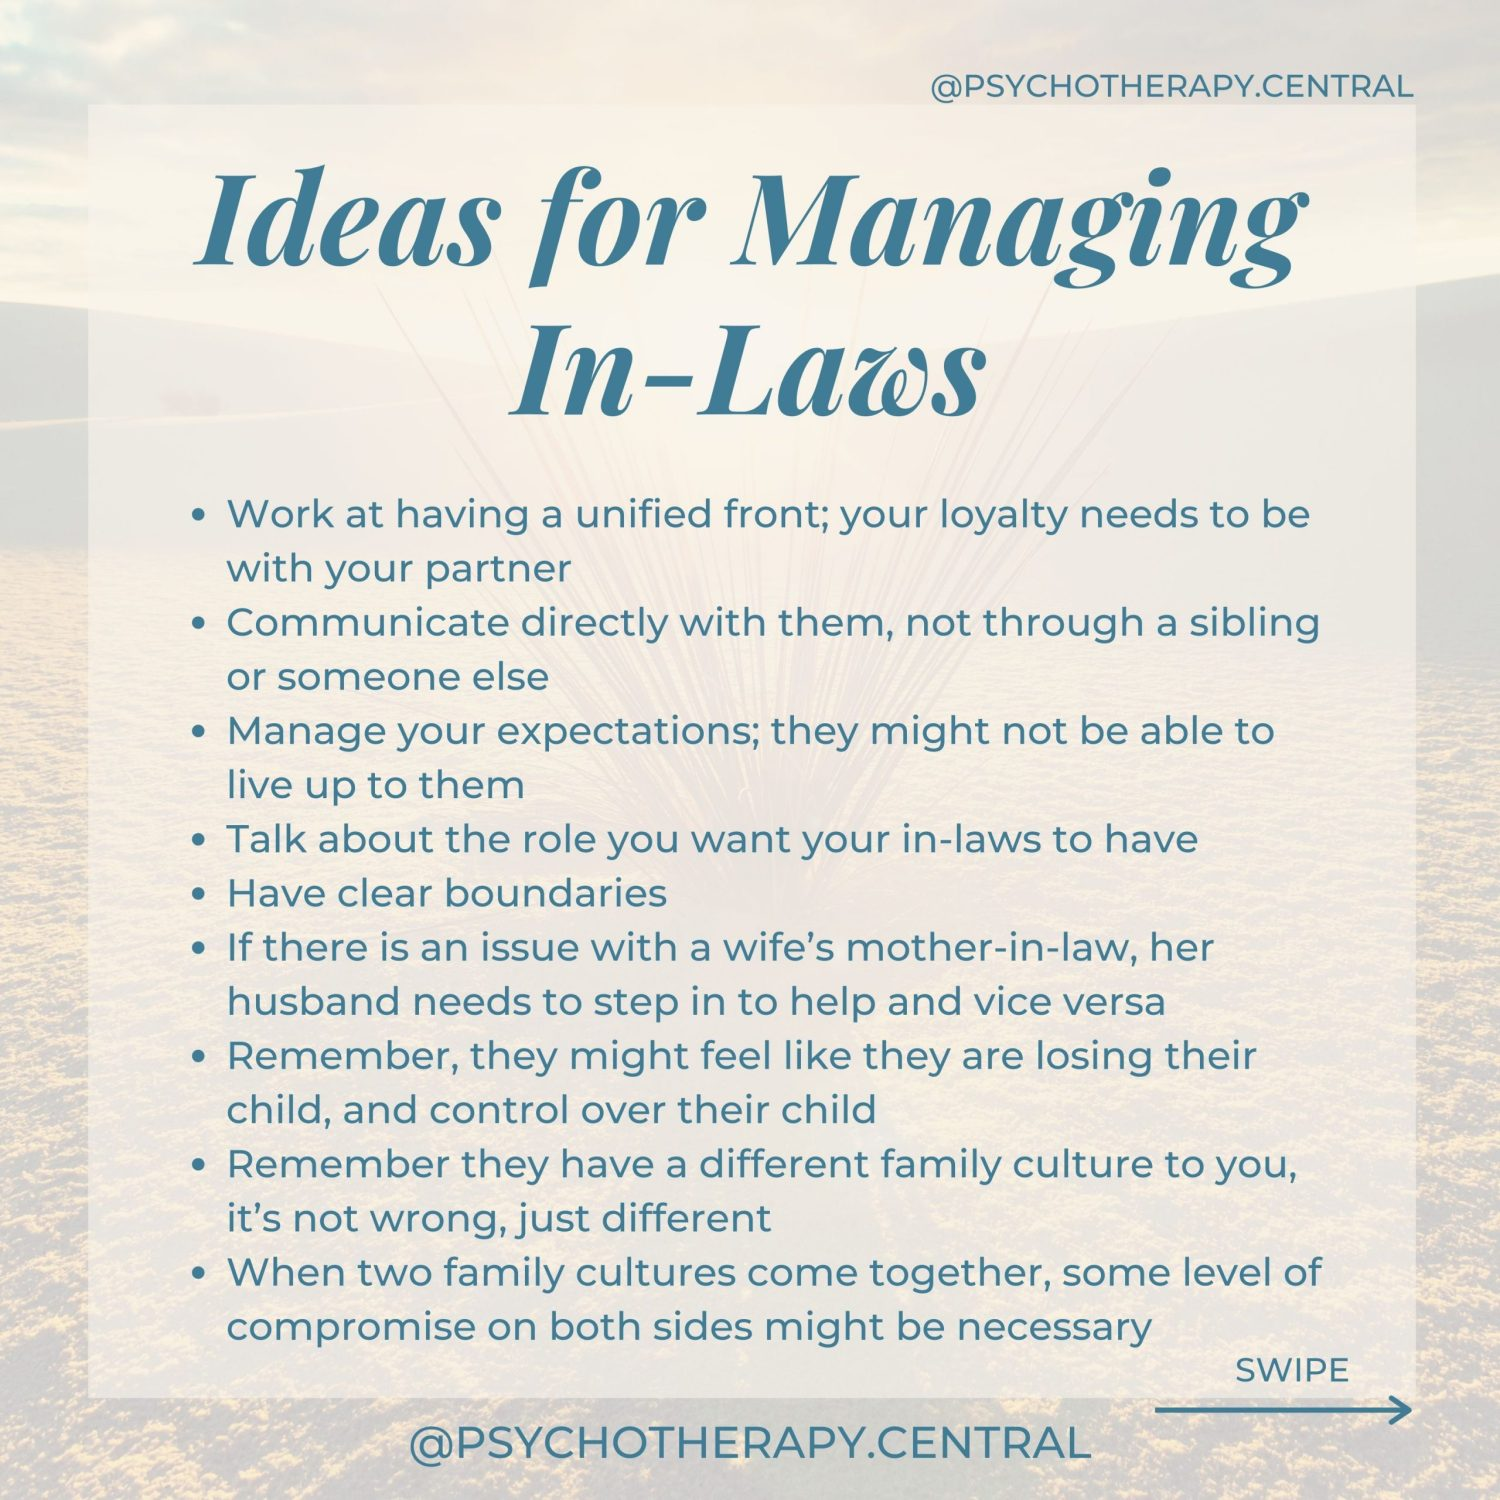 Ideas for Managing In-LawsWork at having a unified front; your loyalty needs to be with your partner Remember, they might feel like they are losing their child, and control over their child Remember they have a different family culture to you, it's not wrong, just different Communication as a couple, directly with them, not through a sibling or someone else Manage your expectations; they might not be able to live up to them Talk about the role you want your in-laws to have Have clear boundaries If there is an issue with a wife's mother-in-law, her husband needs to step in to help and vice versa When two family cultures come together, some level of compromise on both sides is healthy